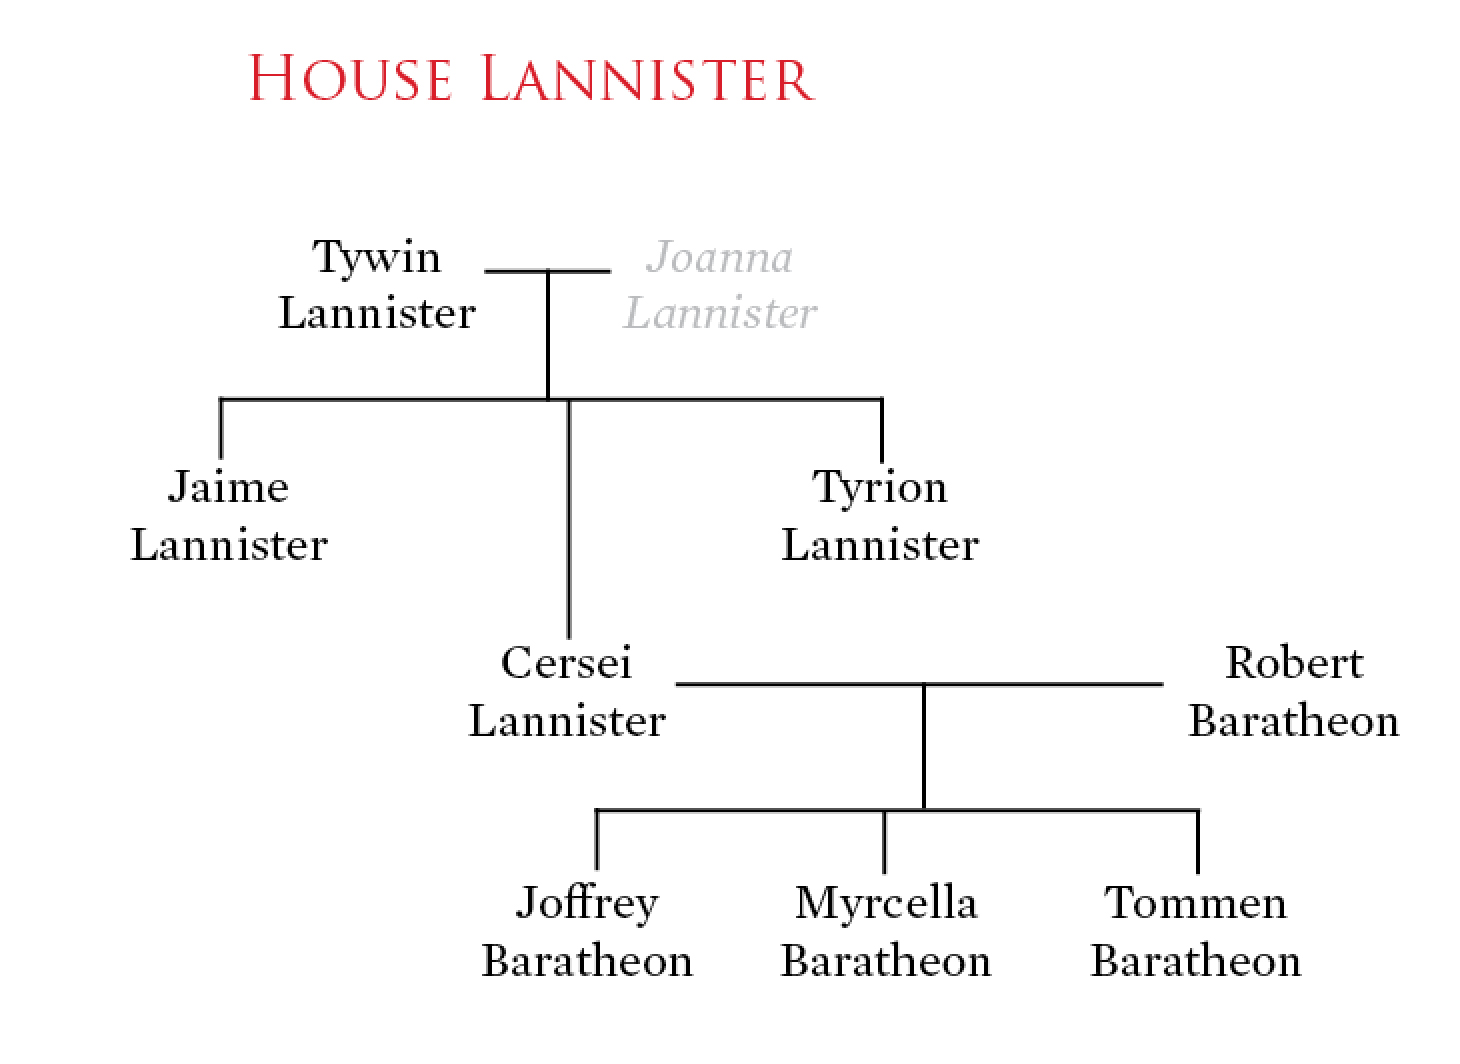 Tywin and his three children often serve as antagonists to the Starks. The Stark-Lannister rivalry is an important part of the series.